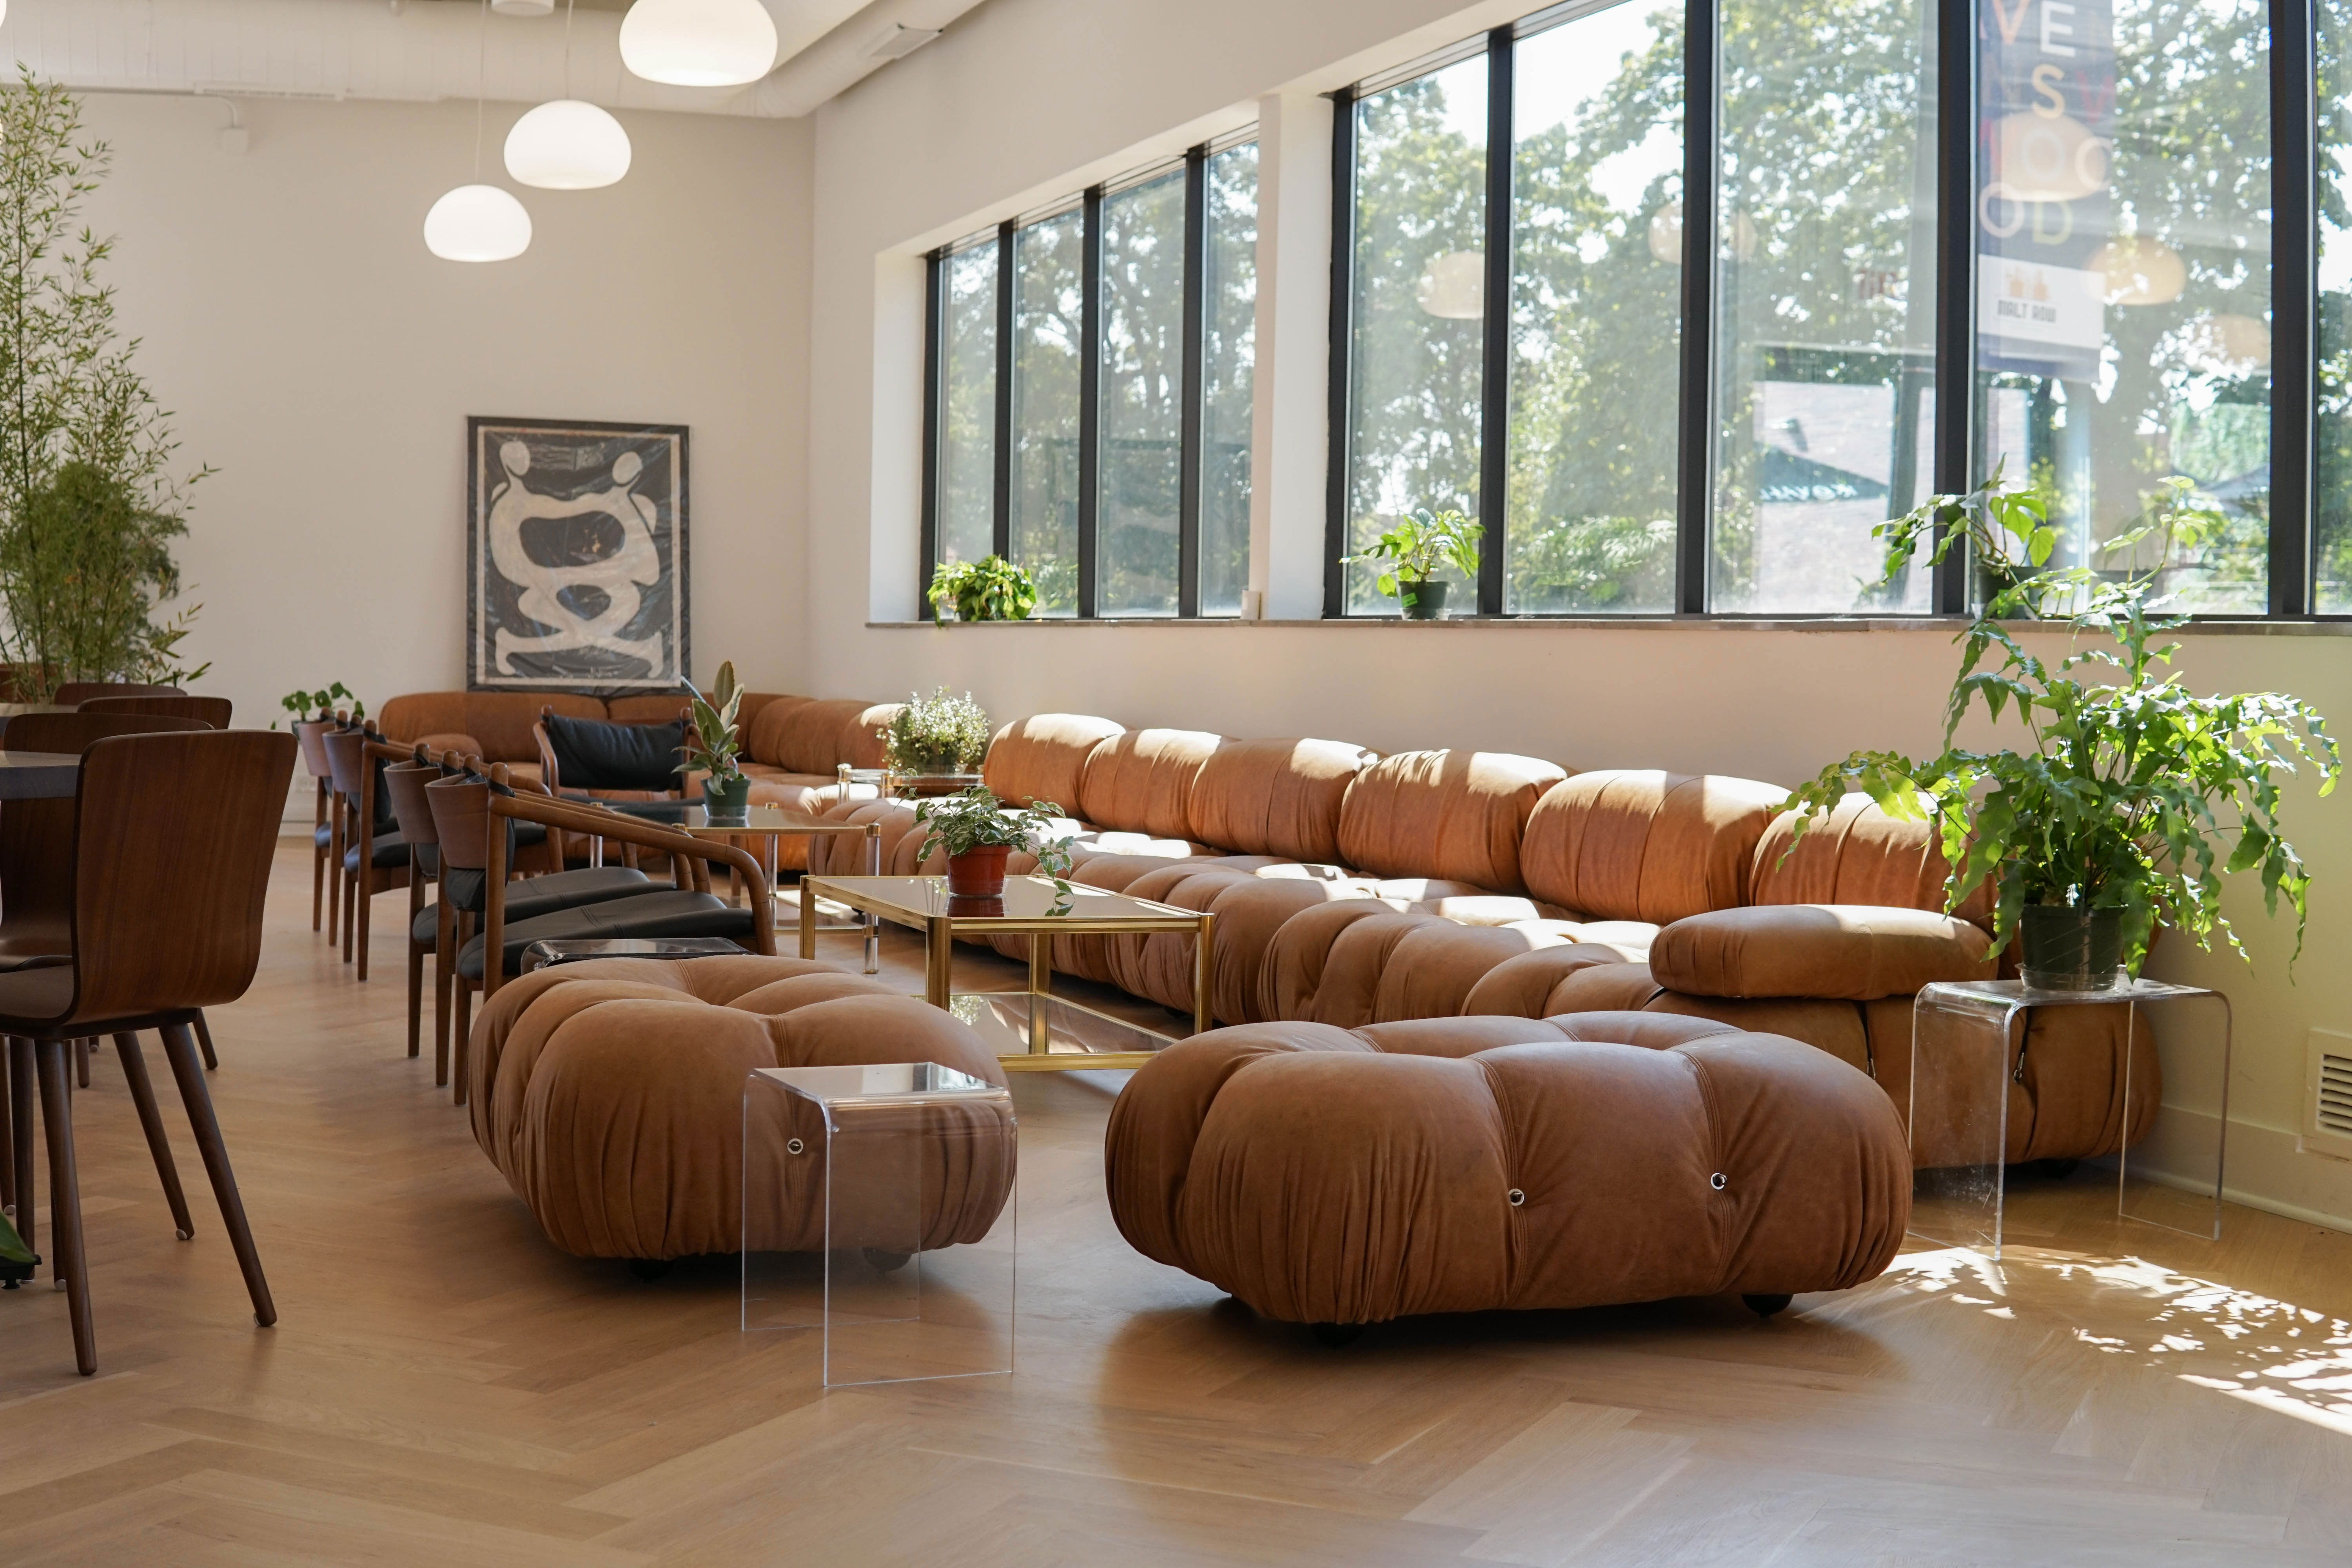 A large tufted leather sofa sits inside a bright room with large windows